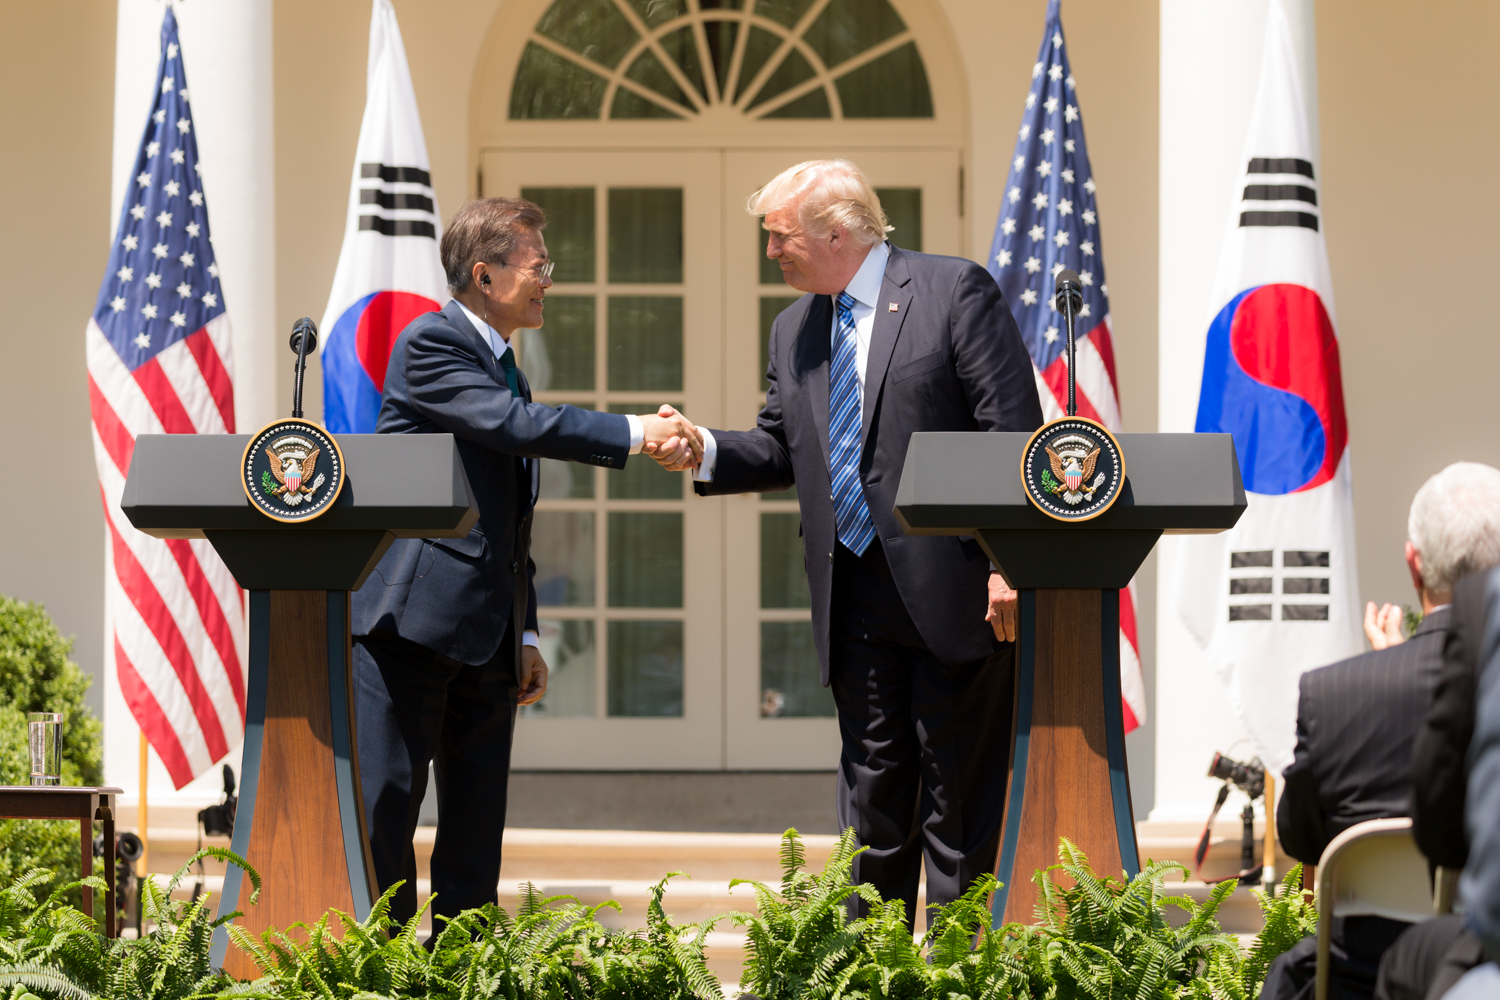 President Trump reassuring South Korean President Moon that the U.S. will always stand by South Korea